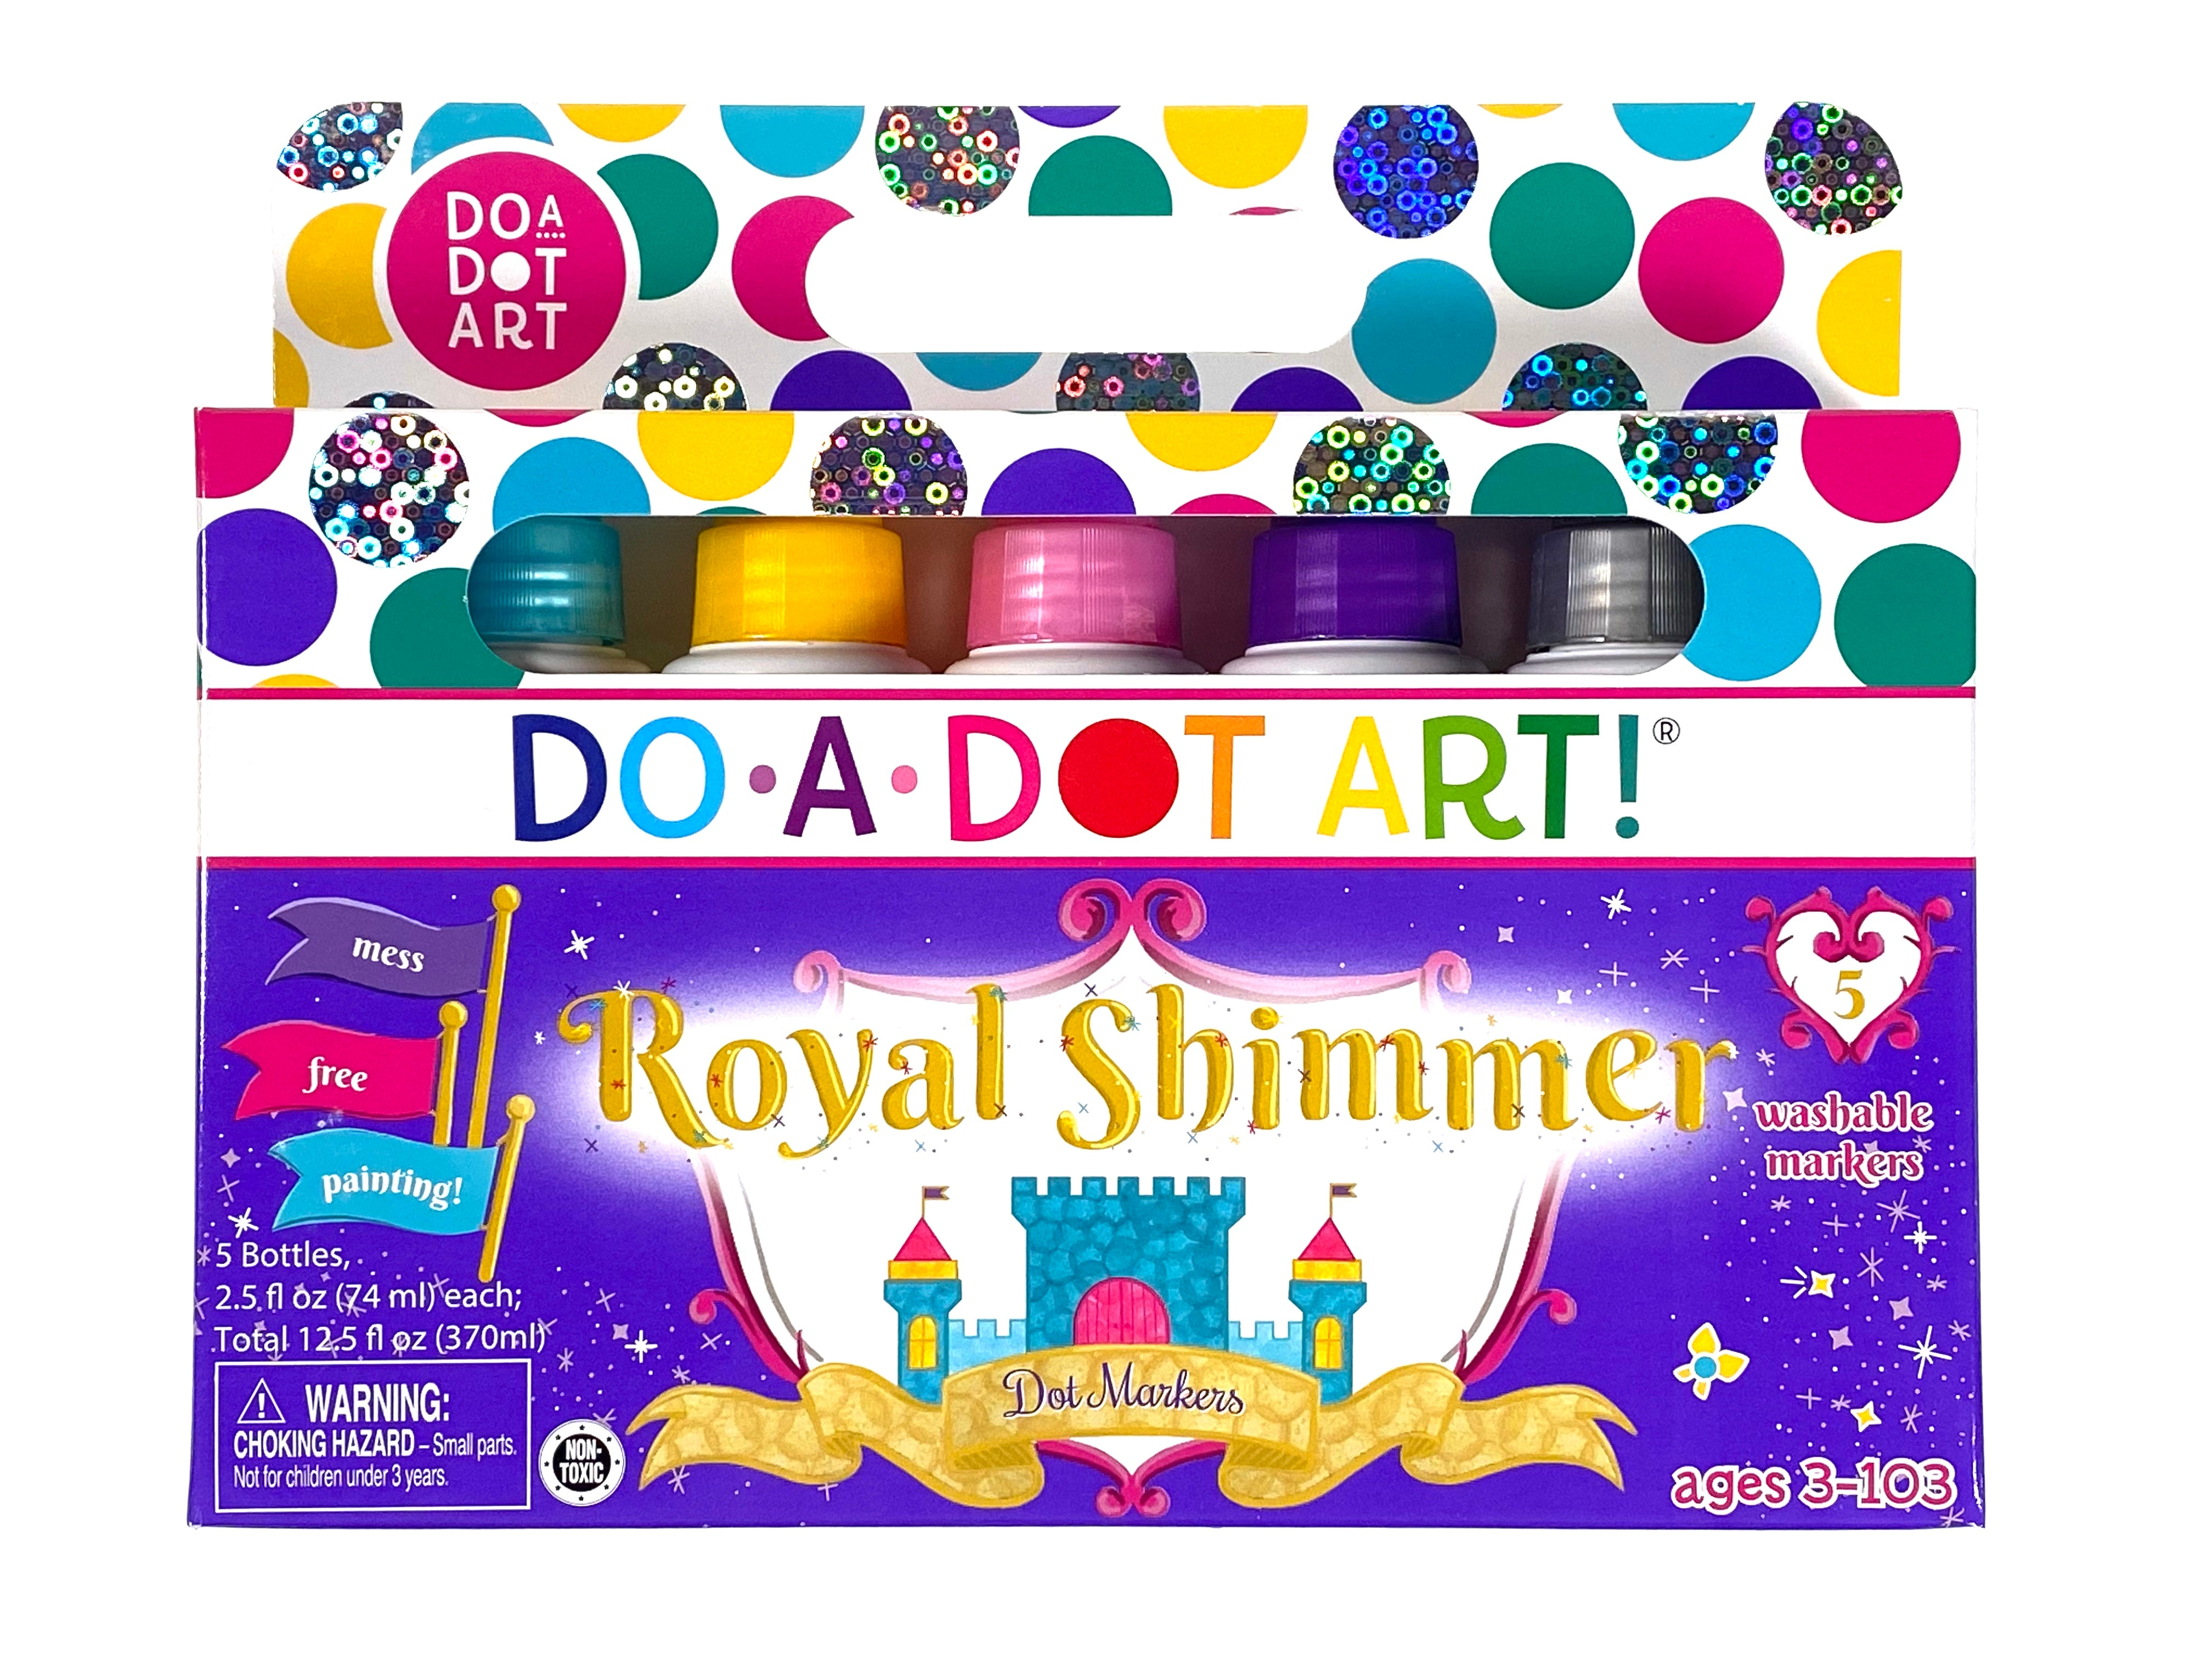 Do-a-Dot Art Royal Shimmer 5-pack